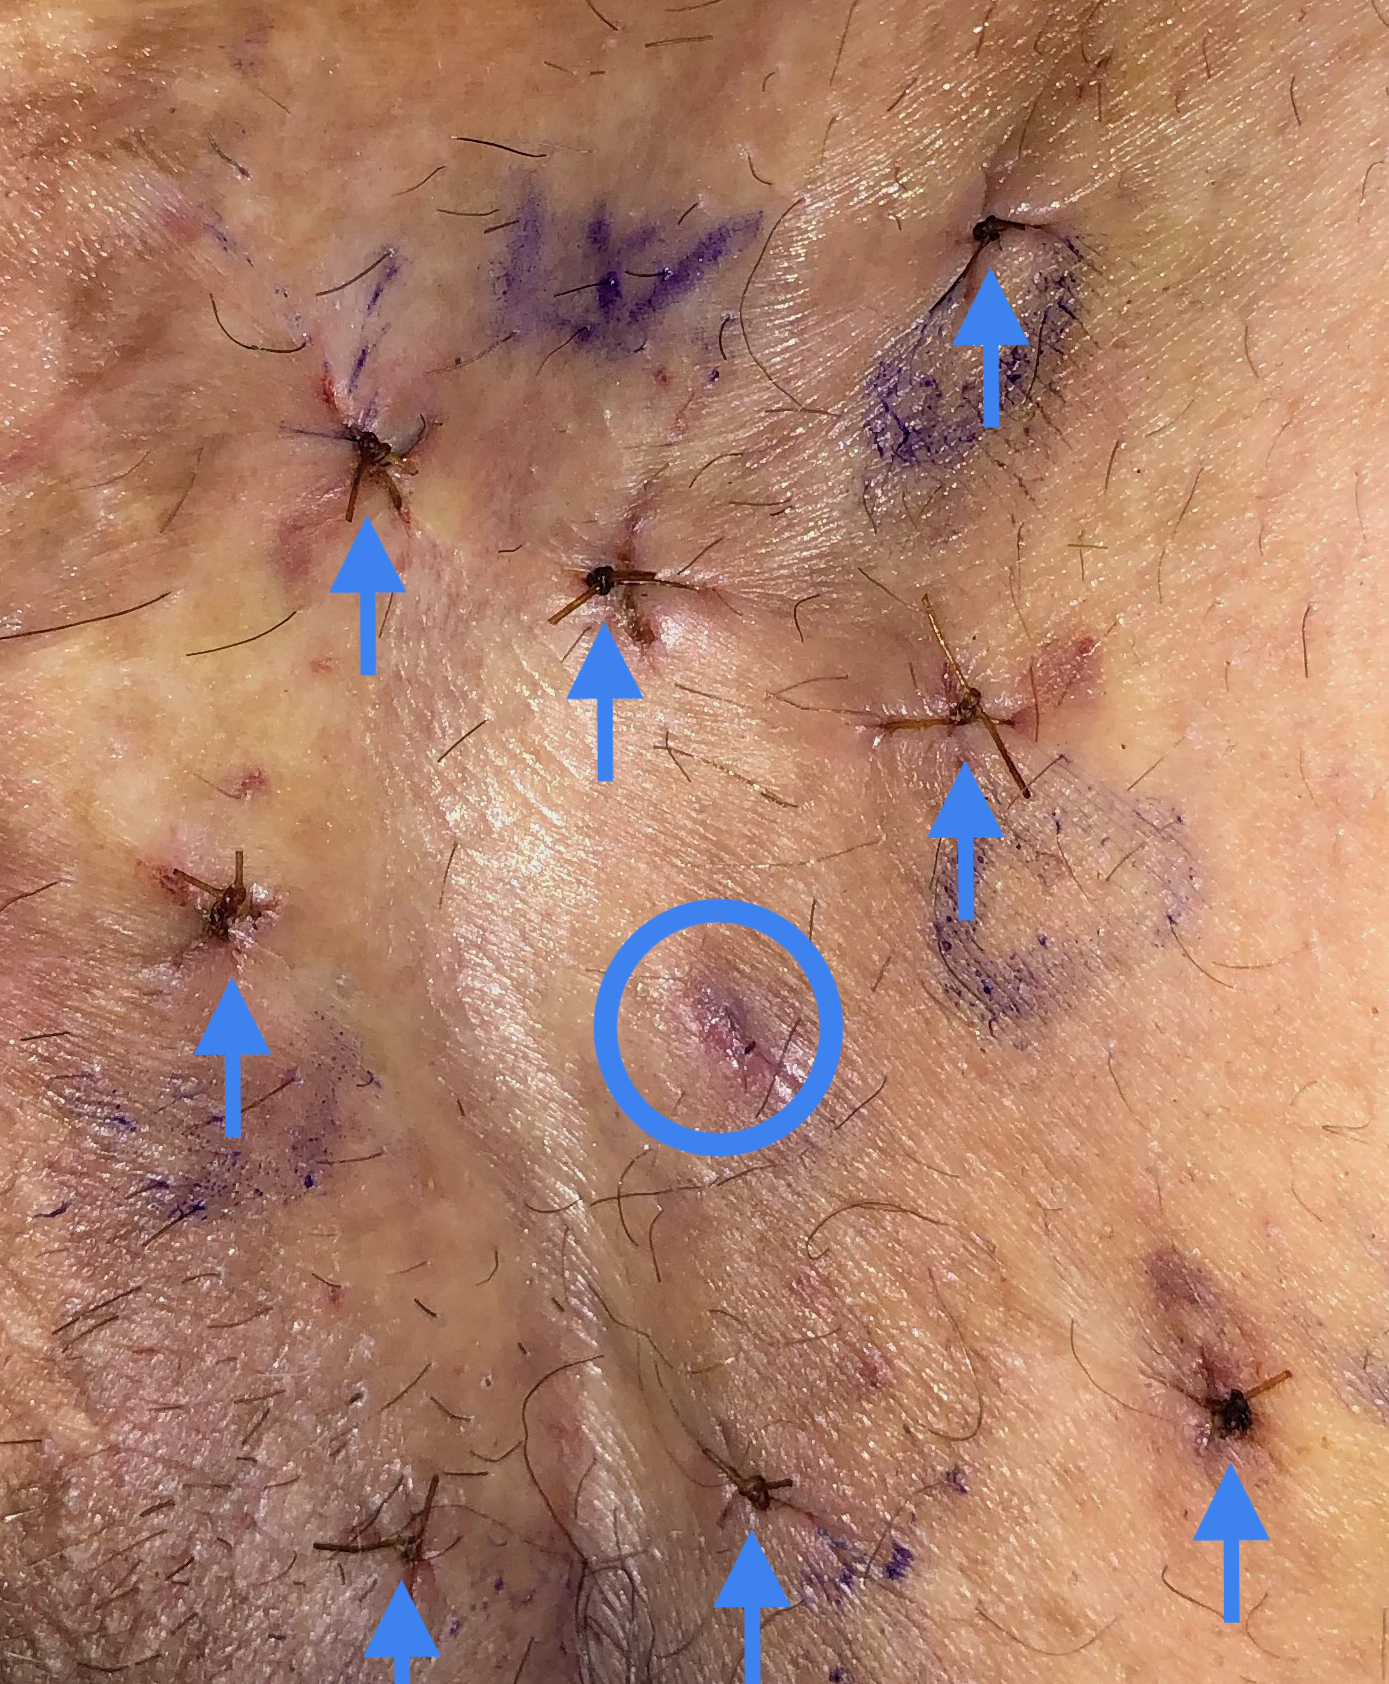 When extramammary Paget's disease (EMPD) is located in one area (as noted by the blue circle), scouting biopsies will often be used (as noted with the blue arrows), to help determine whether the EMPD covers a larger area. A stitch is frequently used to close each biopsy incision.